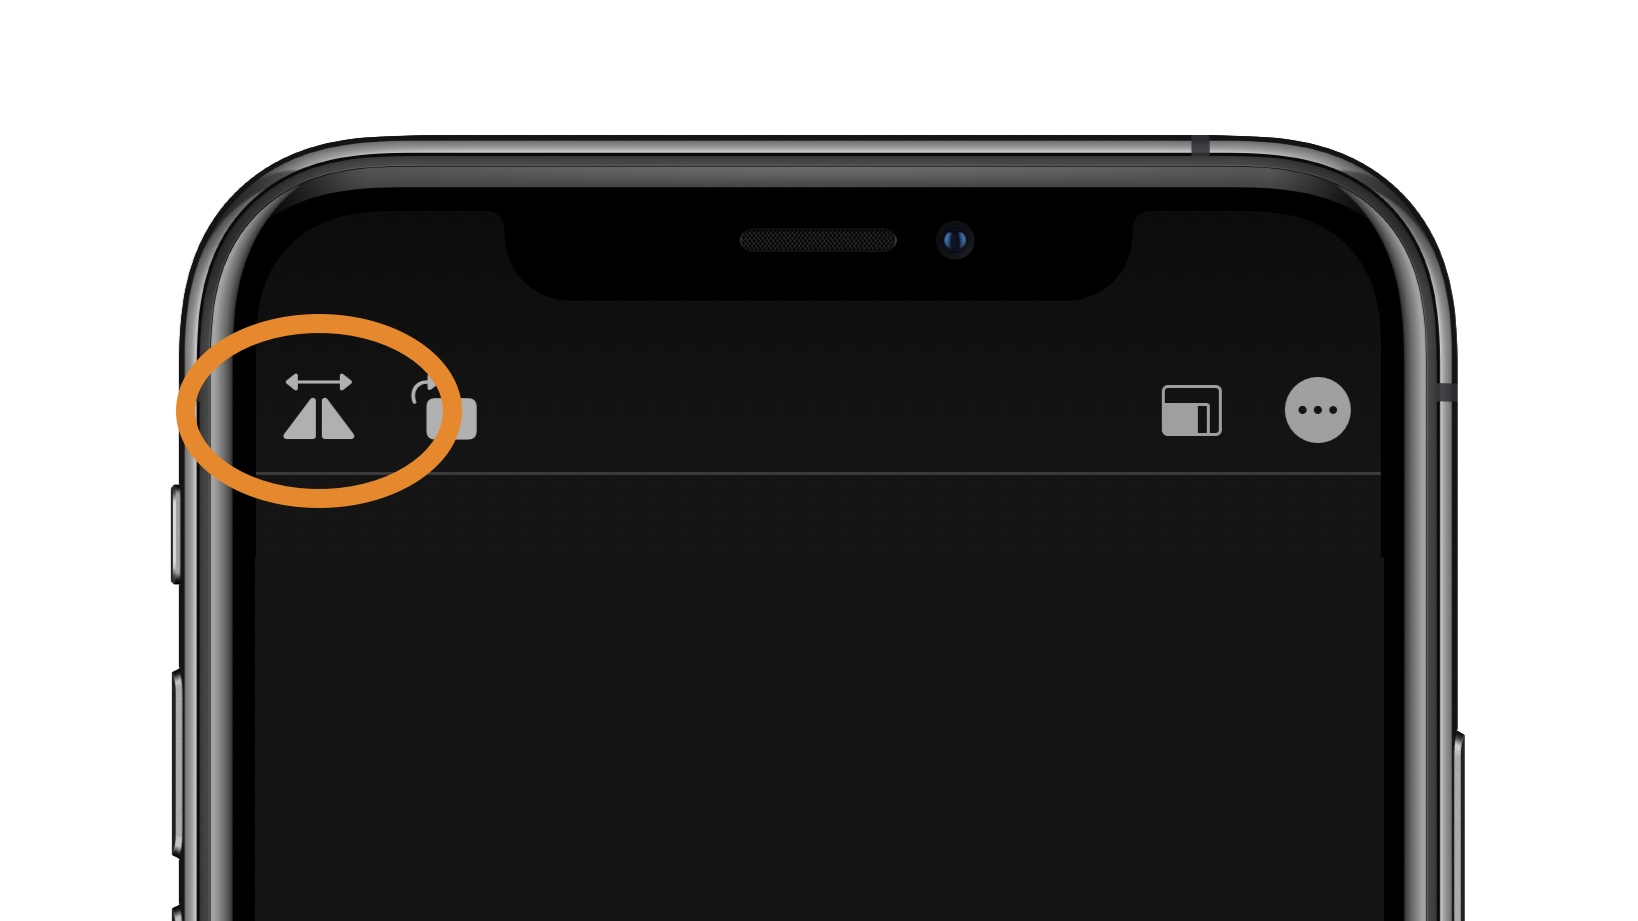 Ios 14 On Iphone Mirror Front Facing Camera Selfies 9to5mac